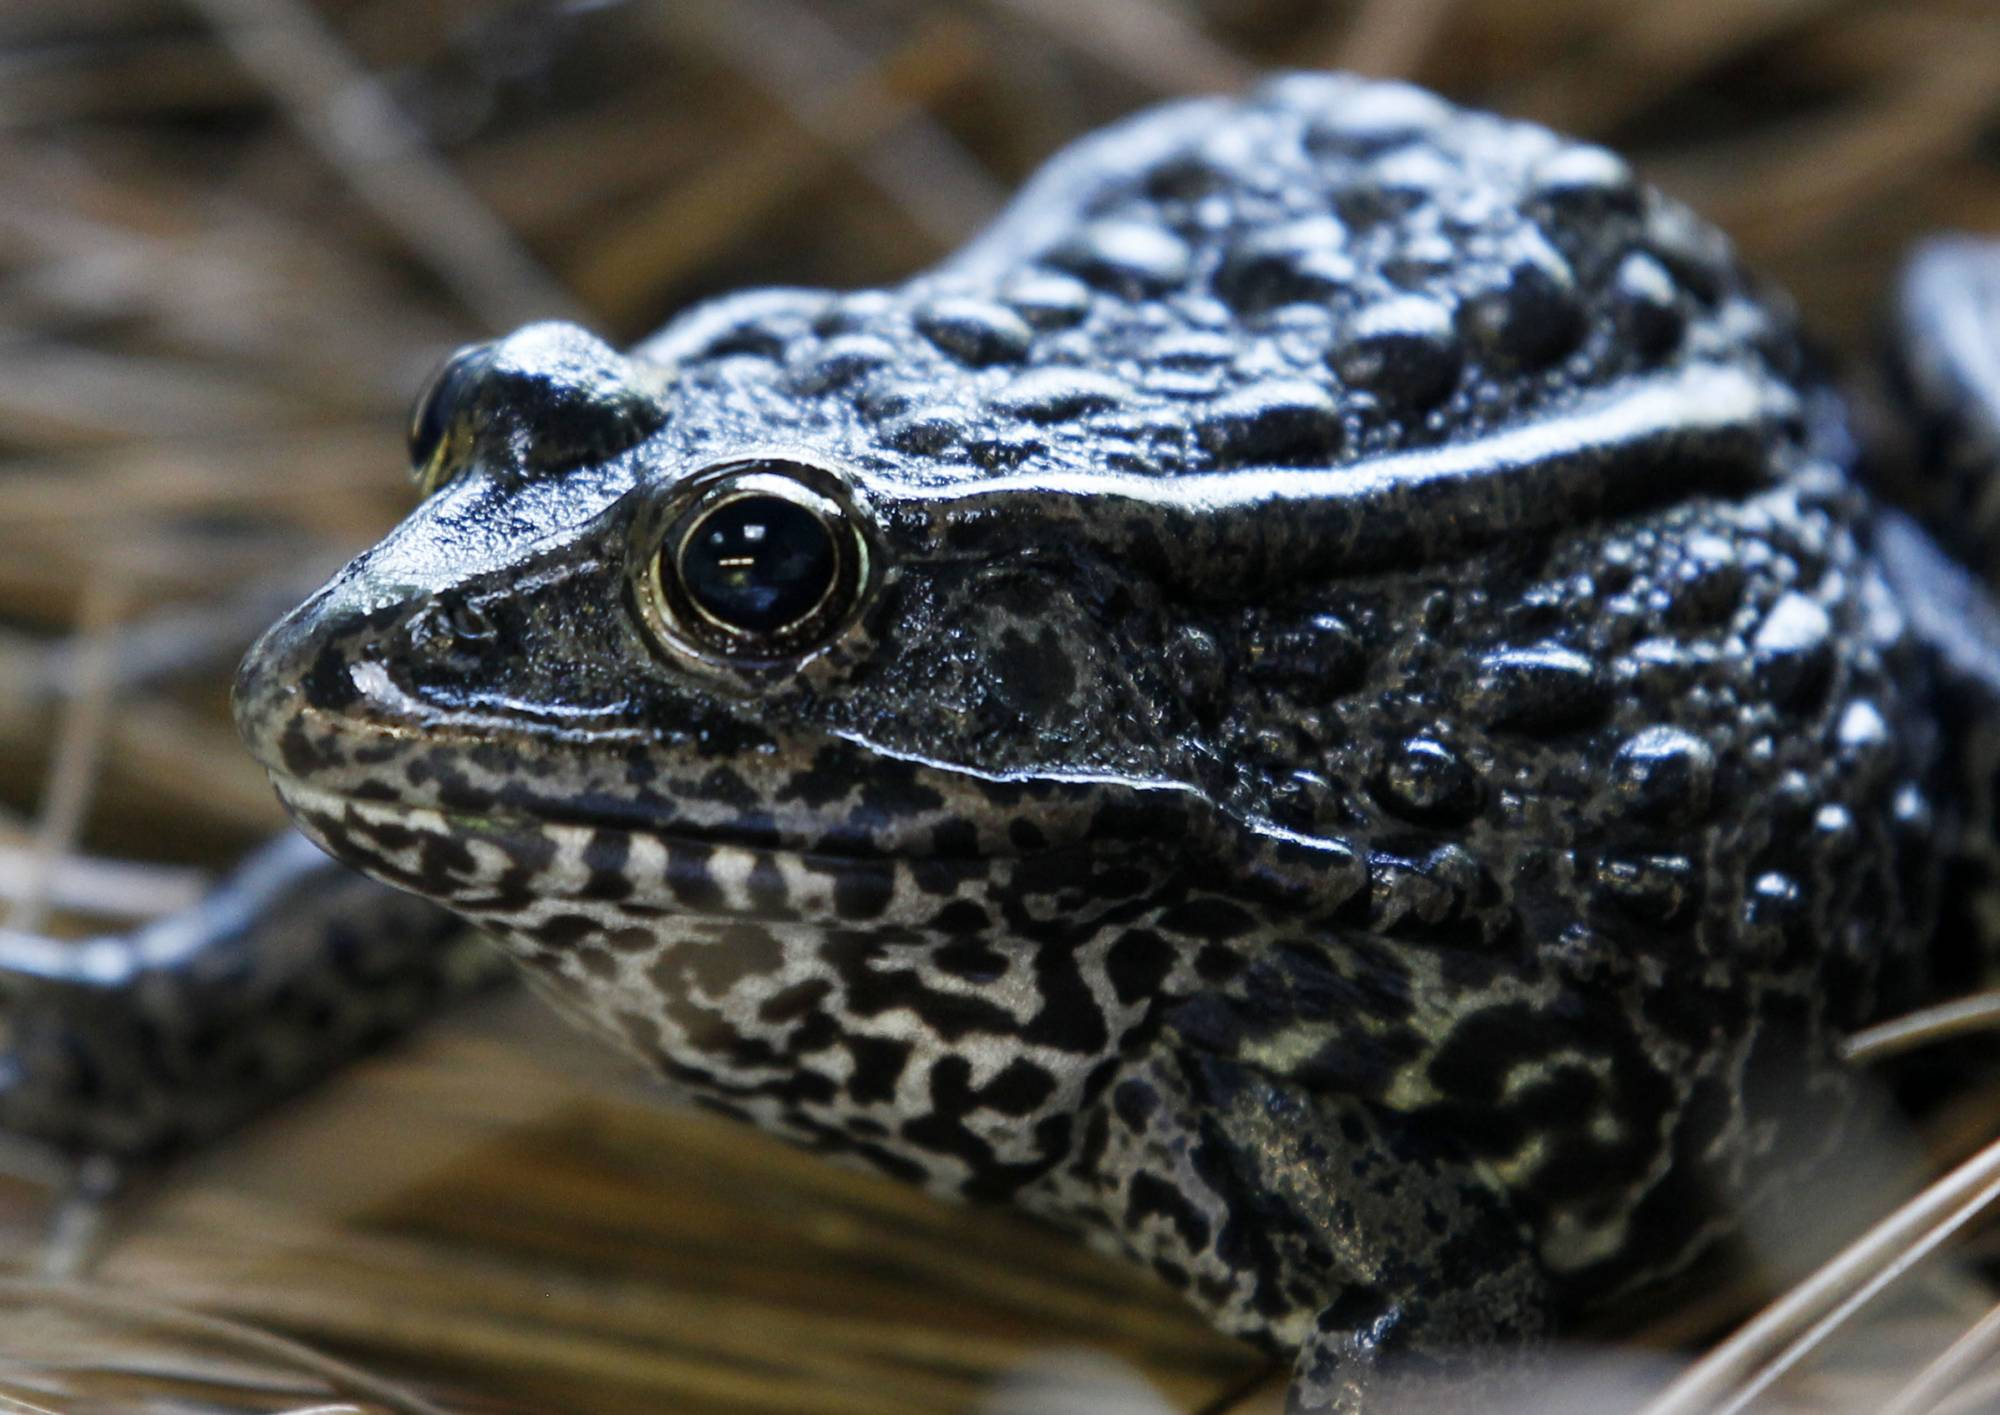 FILE - In this Sept. 27, 2011, file photo is a gopher frog at the Audubon Zoo in New Orleans. Federal officials are proposing on Friday, Sept. 4, 2020, changes to how the endangered species act is used following a U.S. Supreme Court ruling on habitat for the frog. (AP Photo/Gerald Herbert, File)